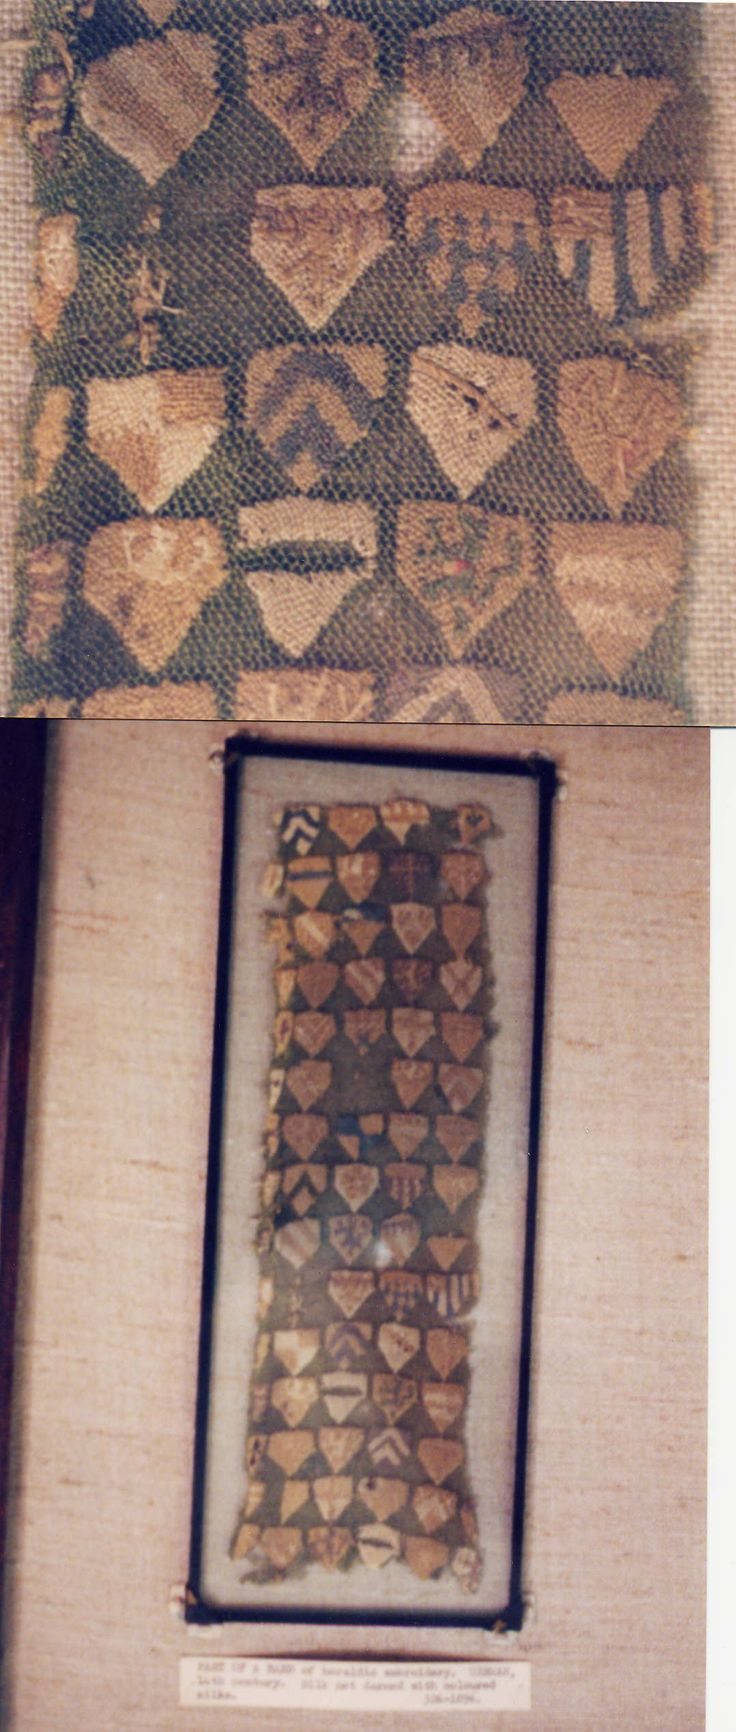 How to breed heraldic dragon - Part Of A Of Heraldic Embroidery German 14th Century Silk Net Darned